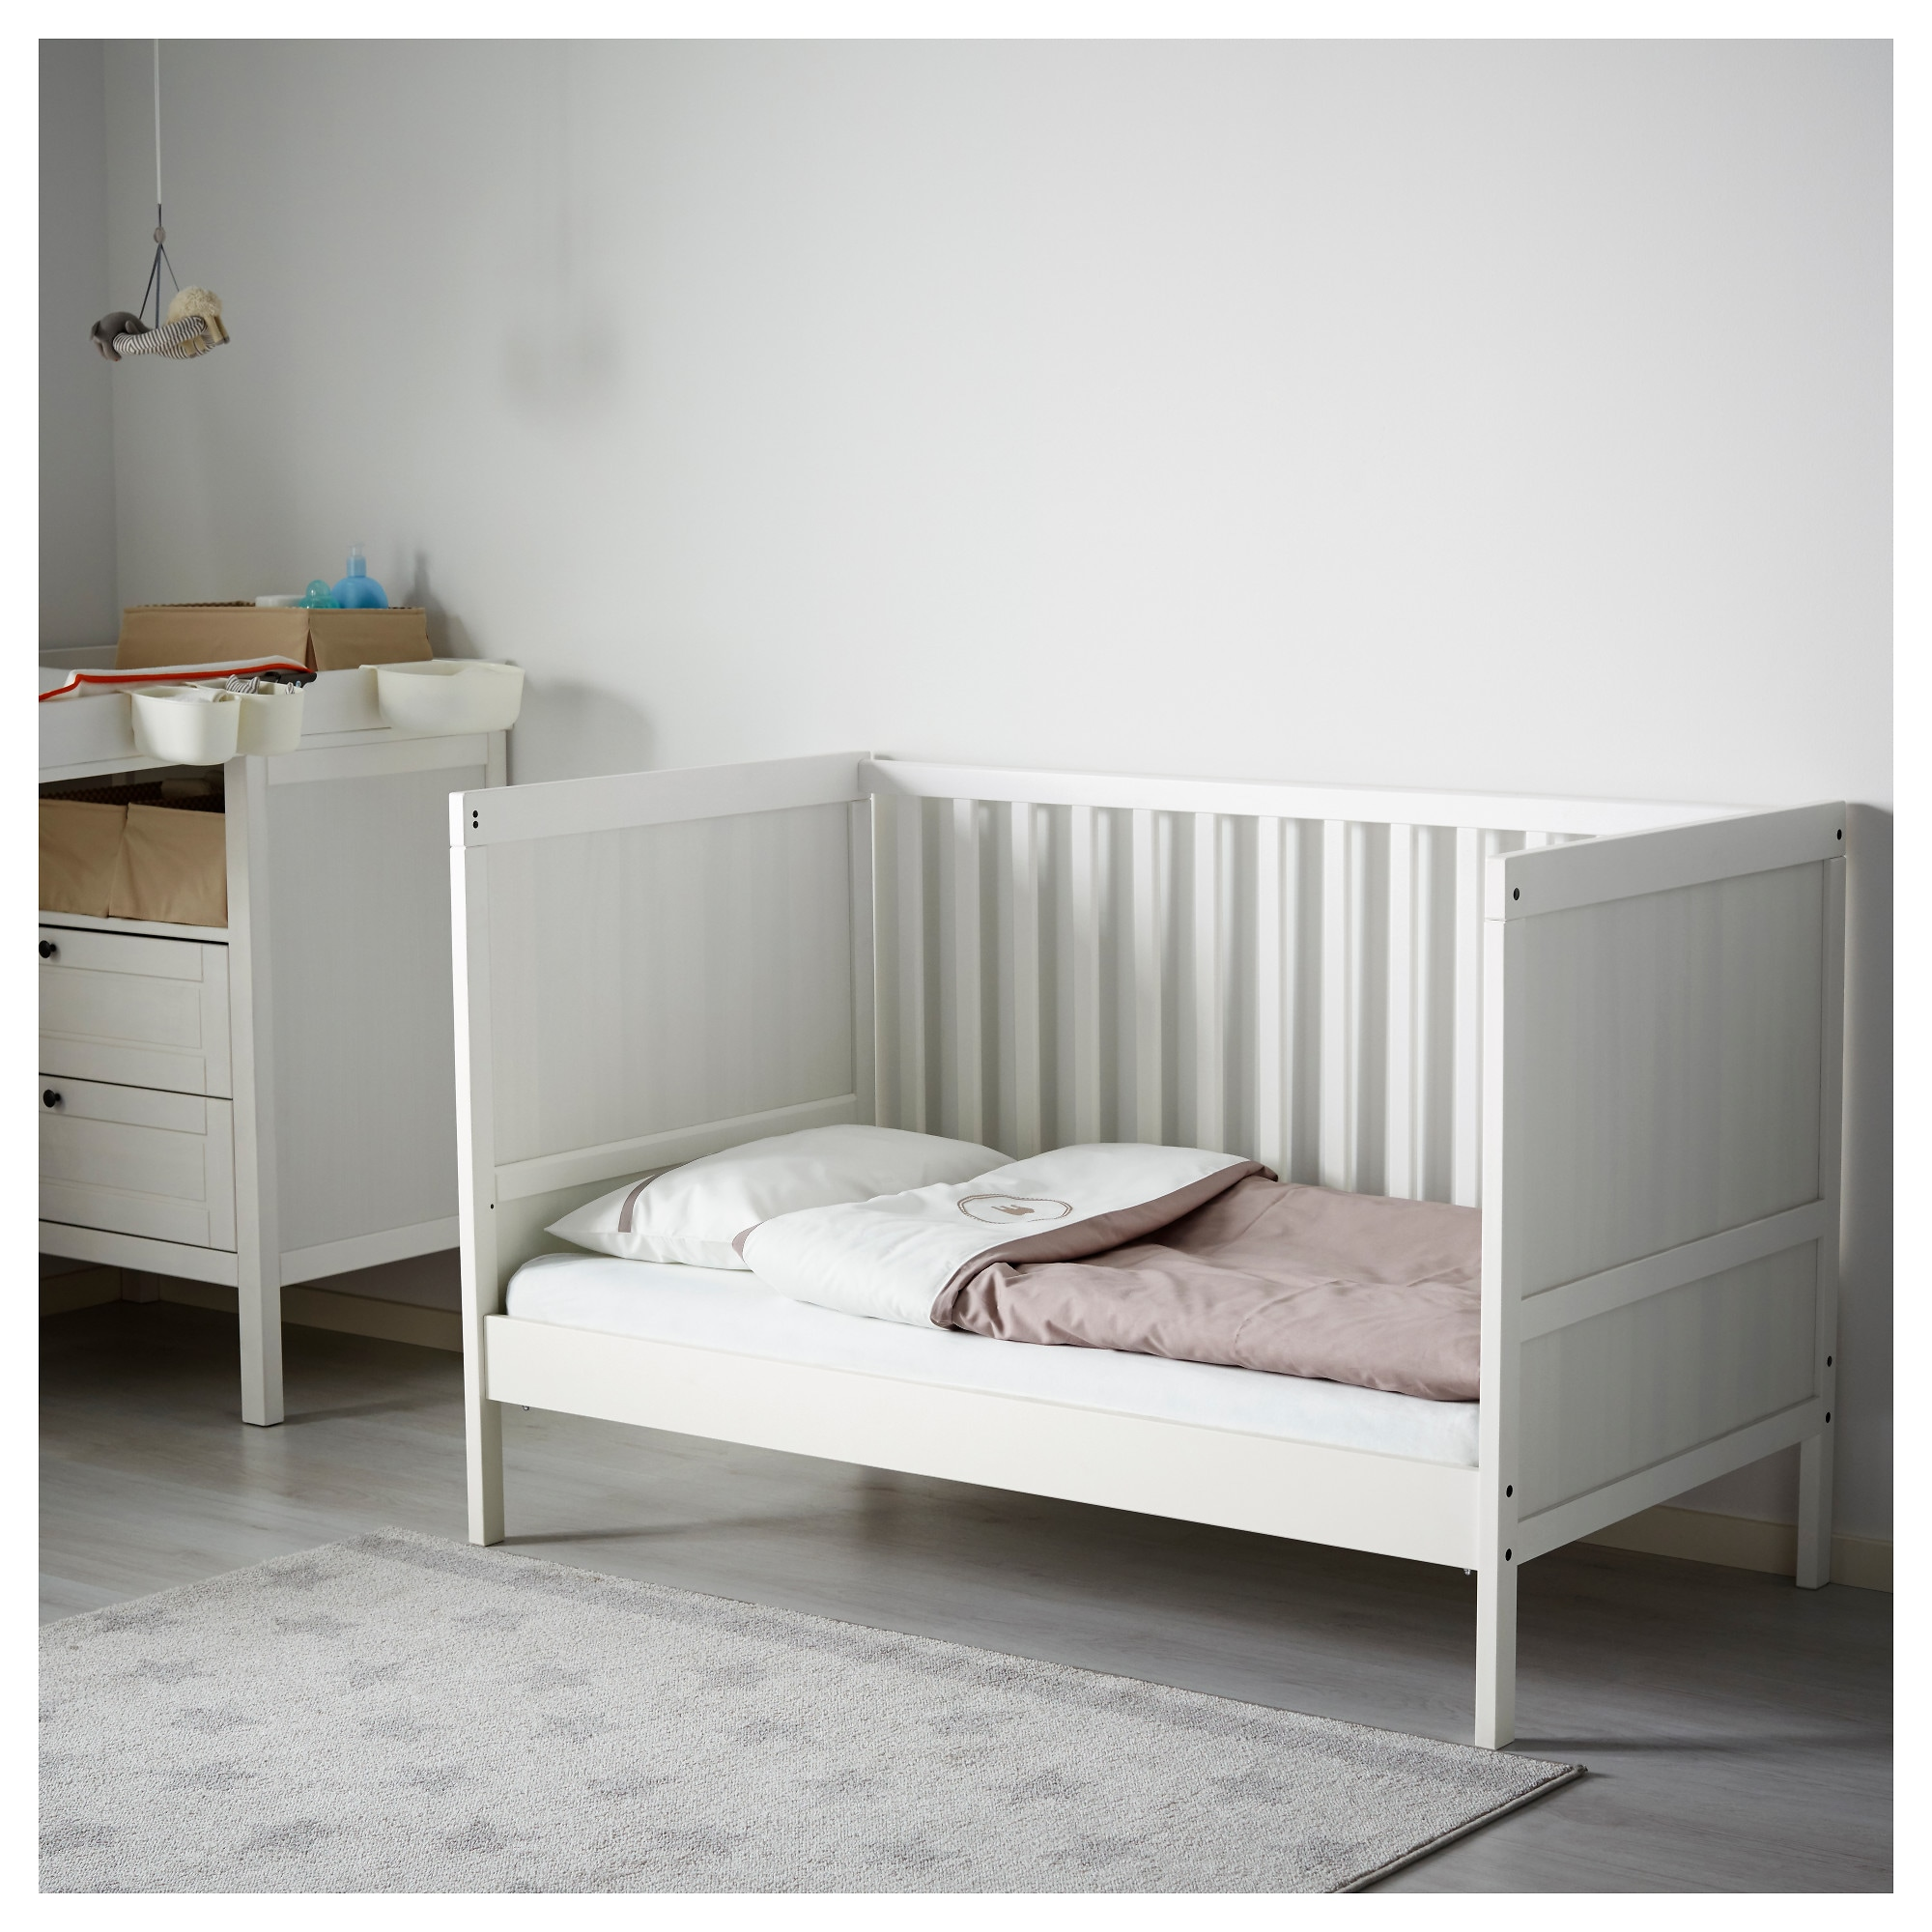 Ikea Seng Barn Awesome Remarkable Ikea Childrens Double Beds Pics